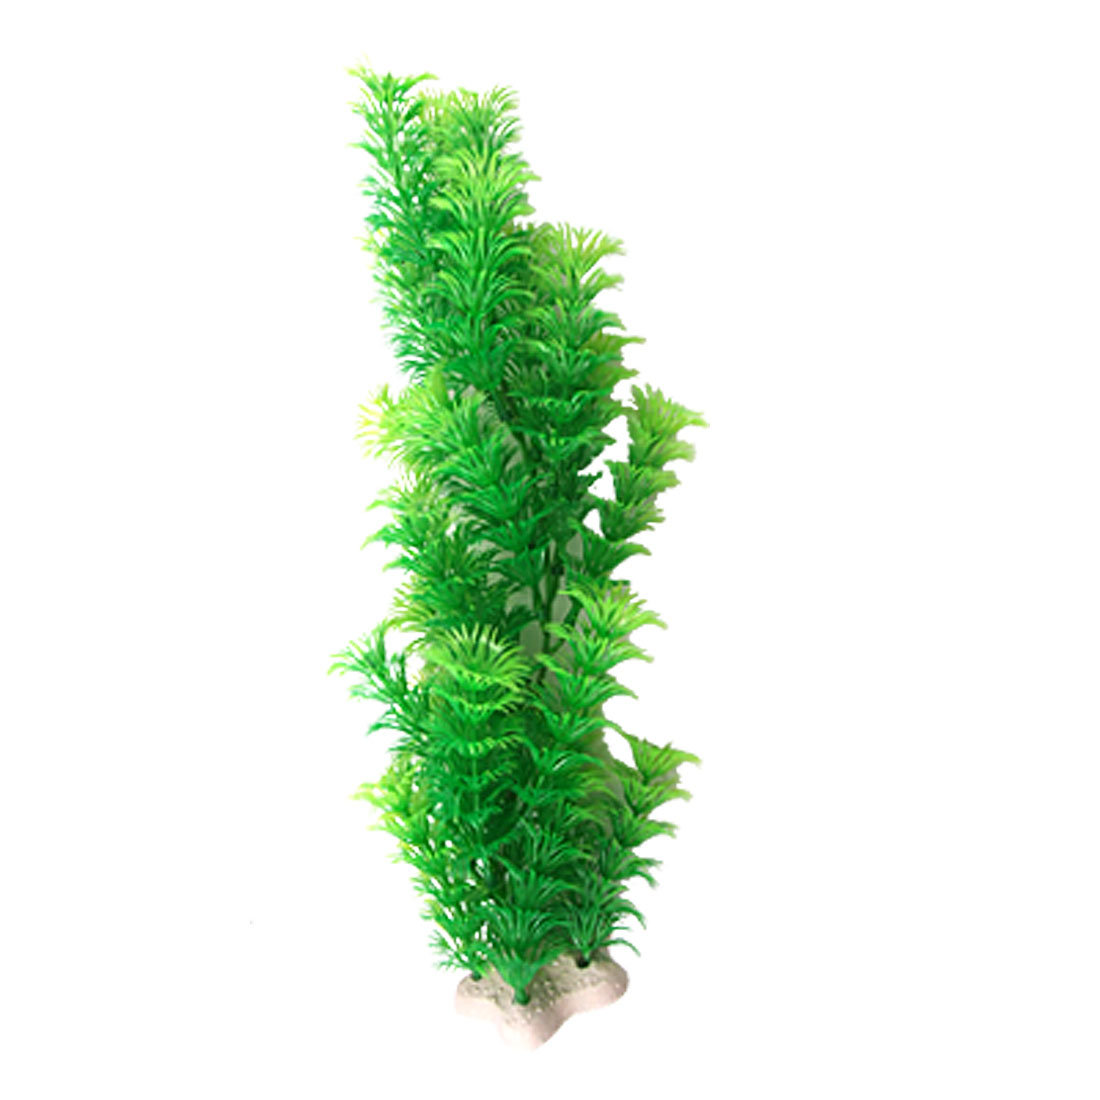 Fish Tank Aquarium Green Plastic Cabomba Plants Decoration